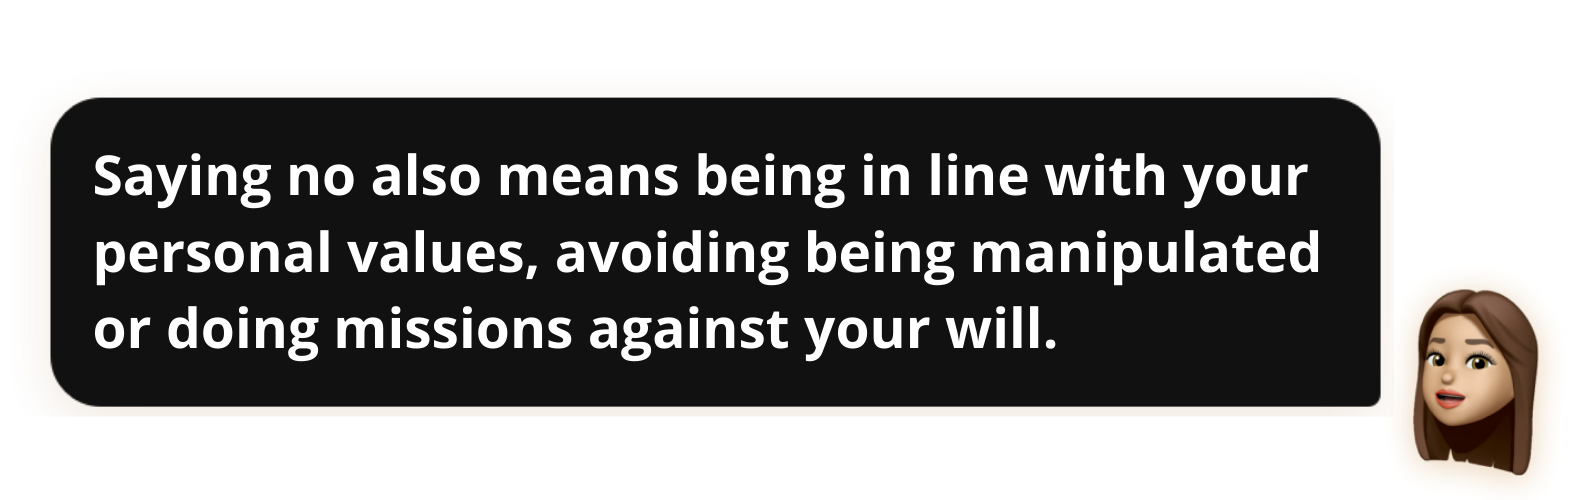 Saying no also means being in line with your personal values, avoiding being manipulated or doing missions against your will.